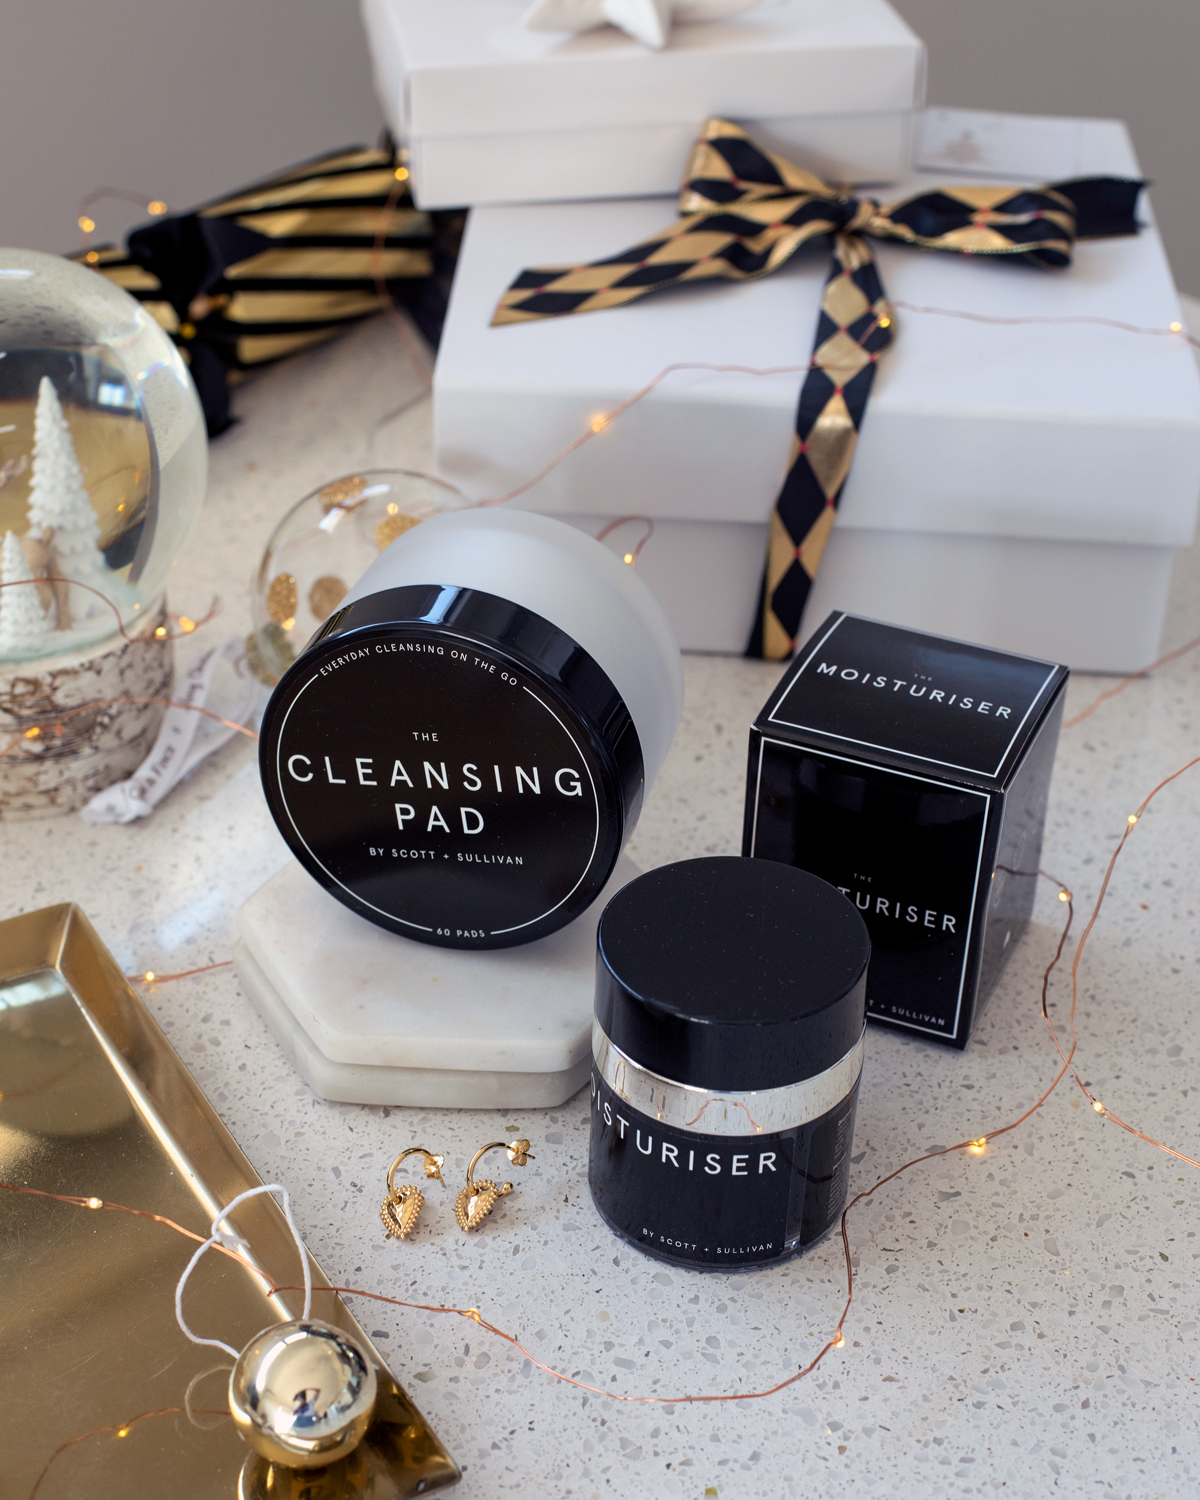 2018 Christmas gift guide Inspiring Wit blog featuring beauty gift ideas The Cleansing Pad and Moisturiser by Scott and Sullivan